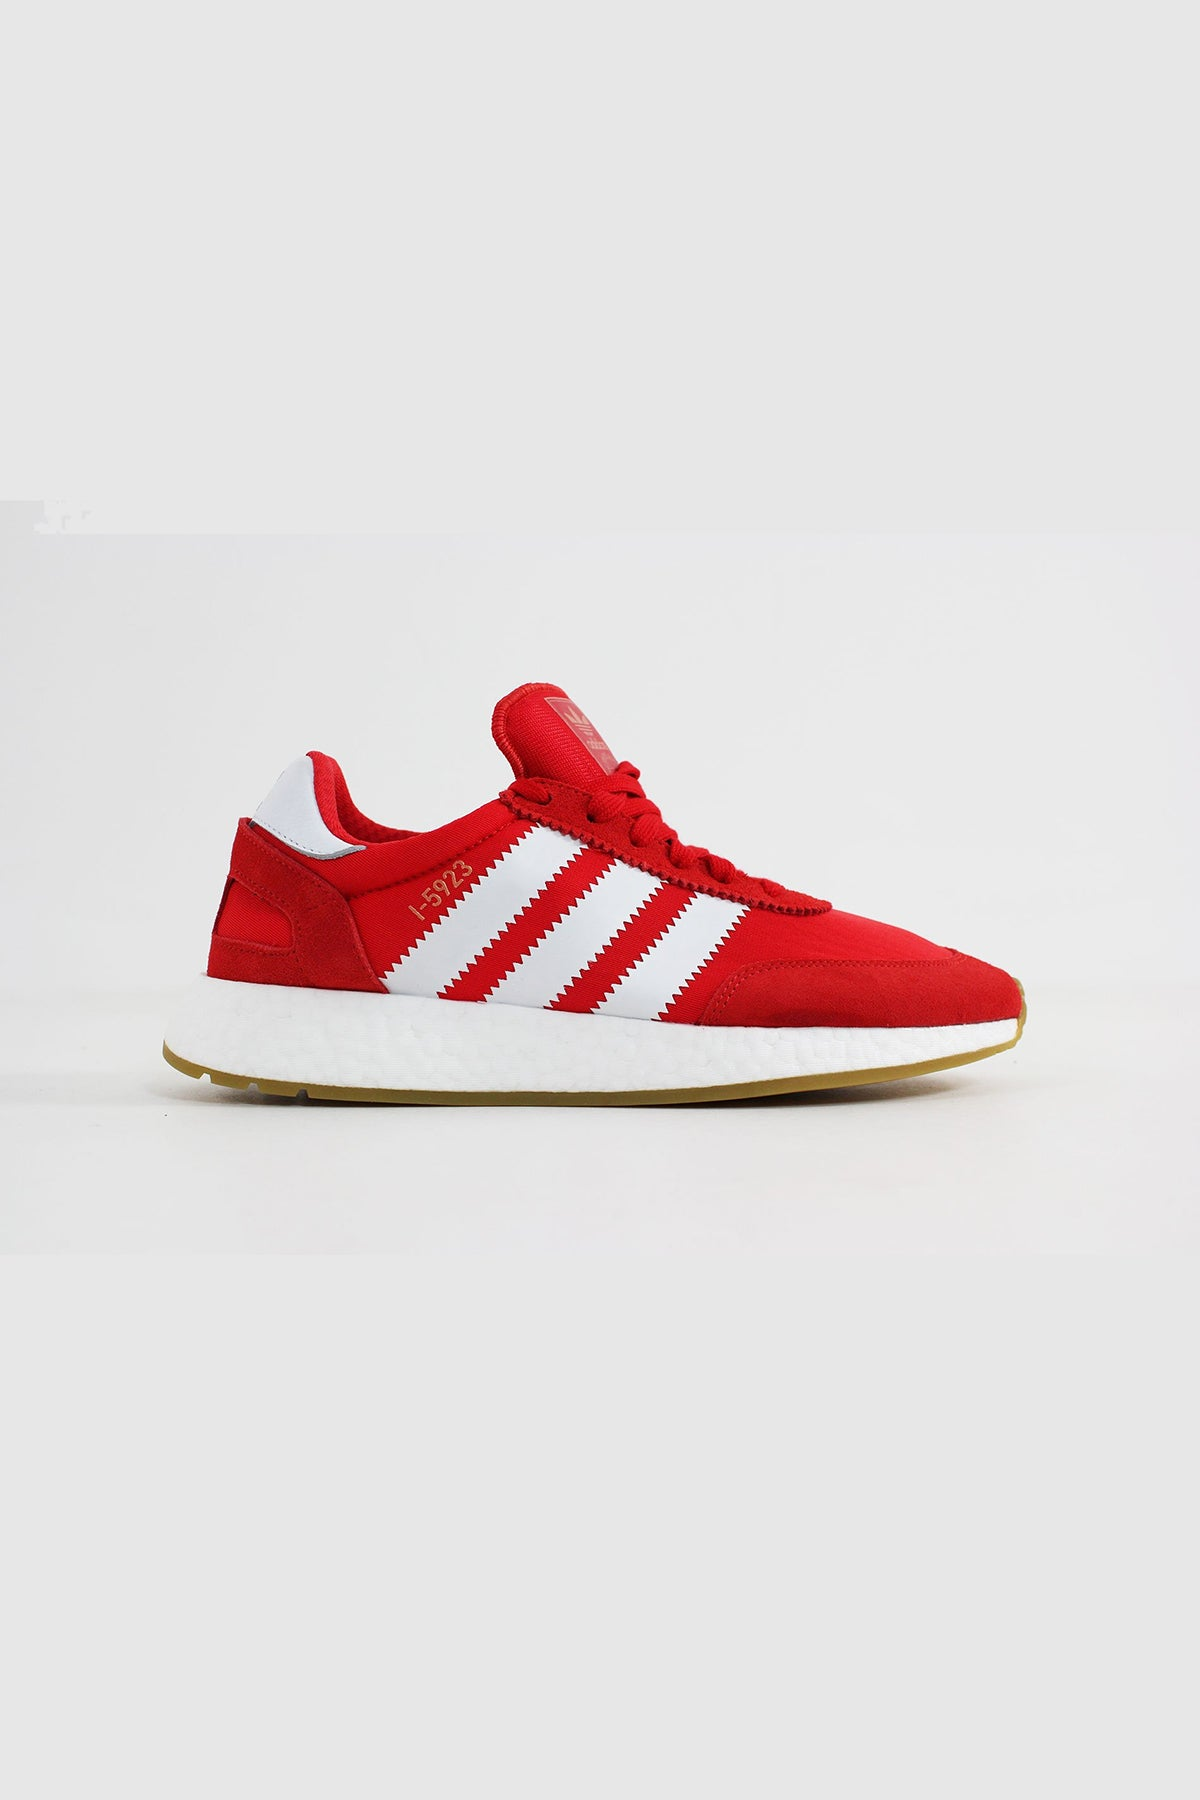 Adidas - I-5923 (Red/ FTW White/ Gum 3) BB2091